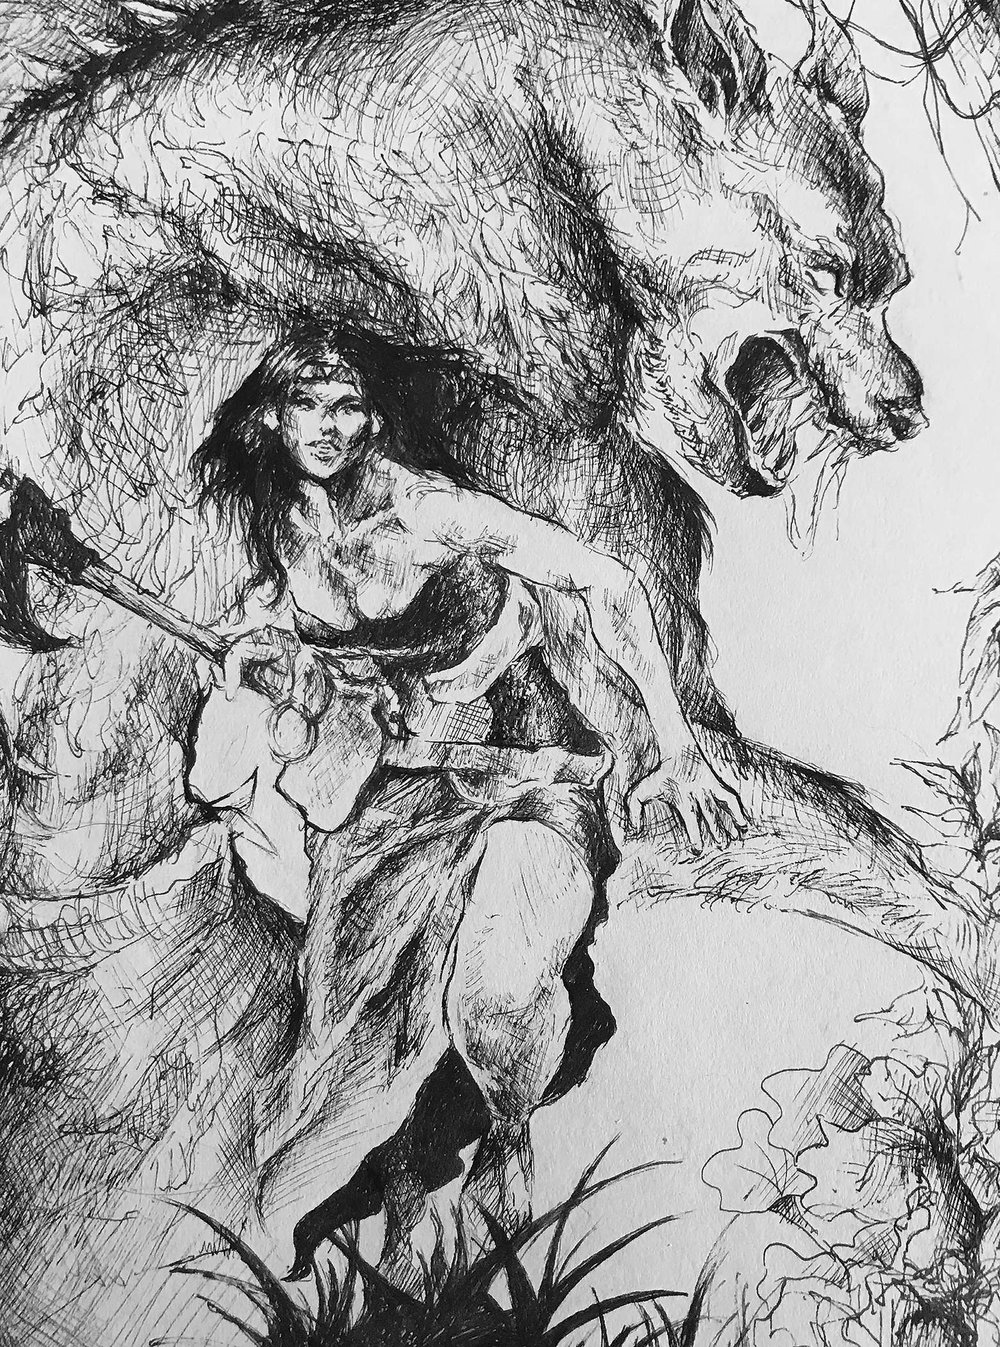 Black & White Line Illustration, Joyce Chan (IDEA22)   This assignment is about creating a dynamic composition with organic elements and characters based on 3 different present-day photo references. At the end, I created this illustration that features a female hunter and the fierce werewolf in the jungle.